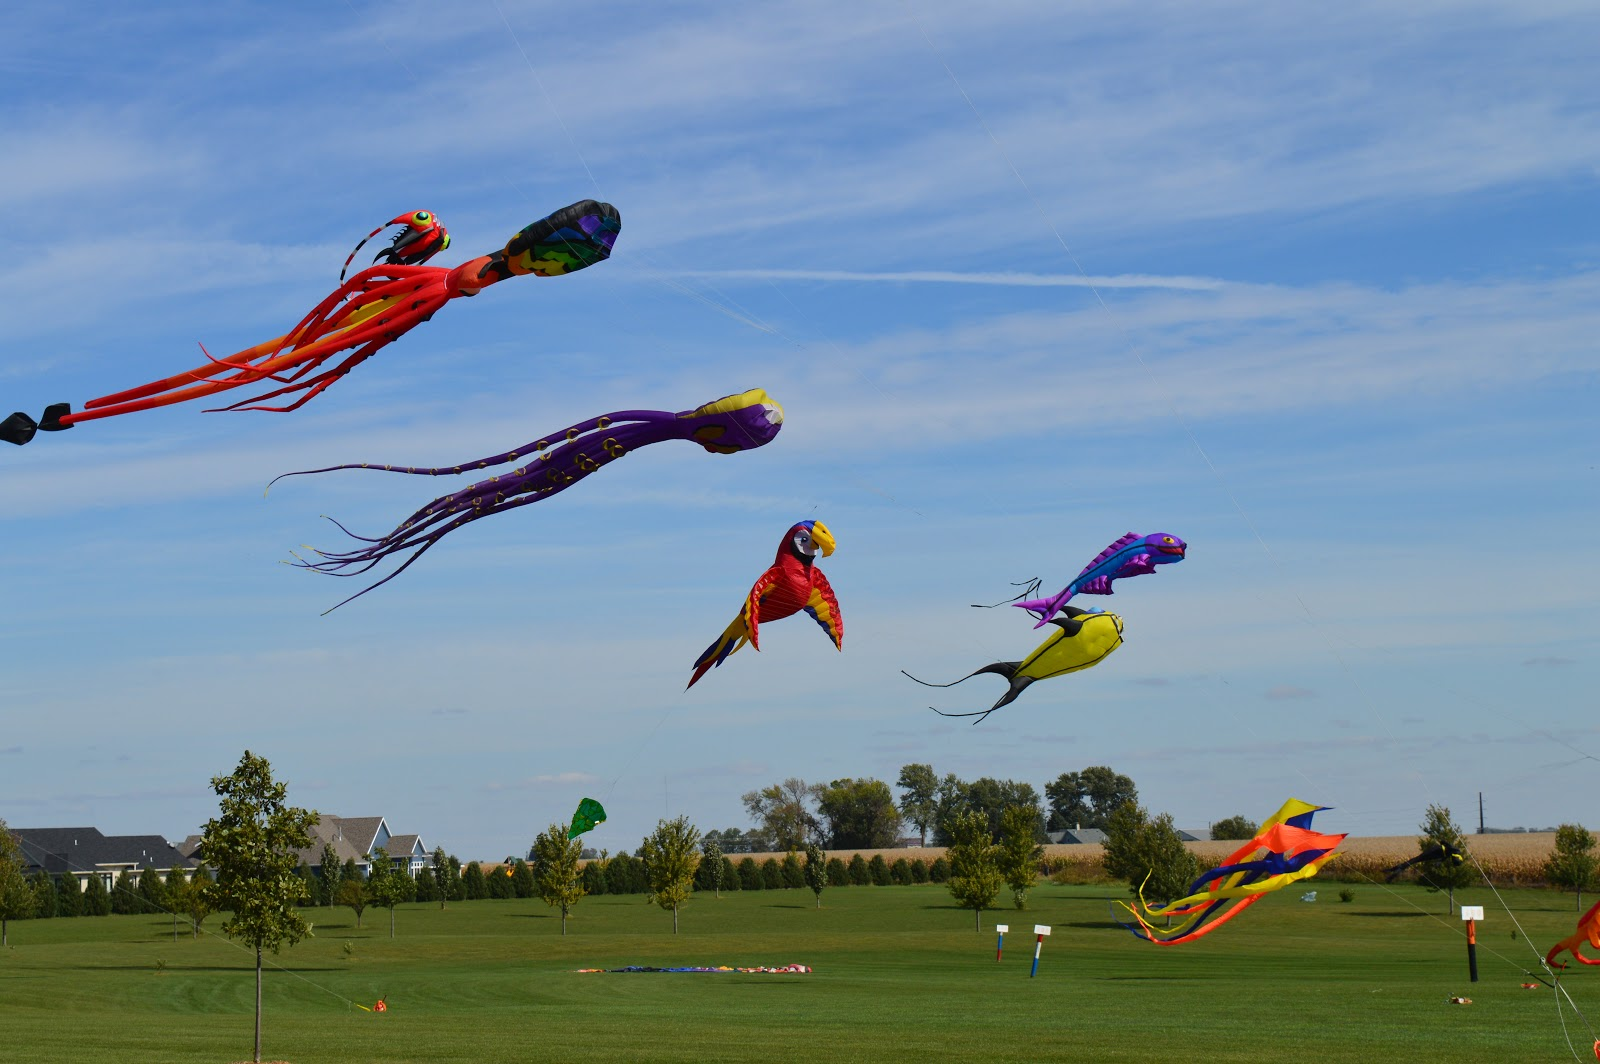 Kites Over Grinnell